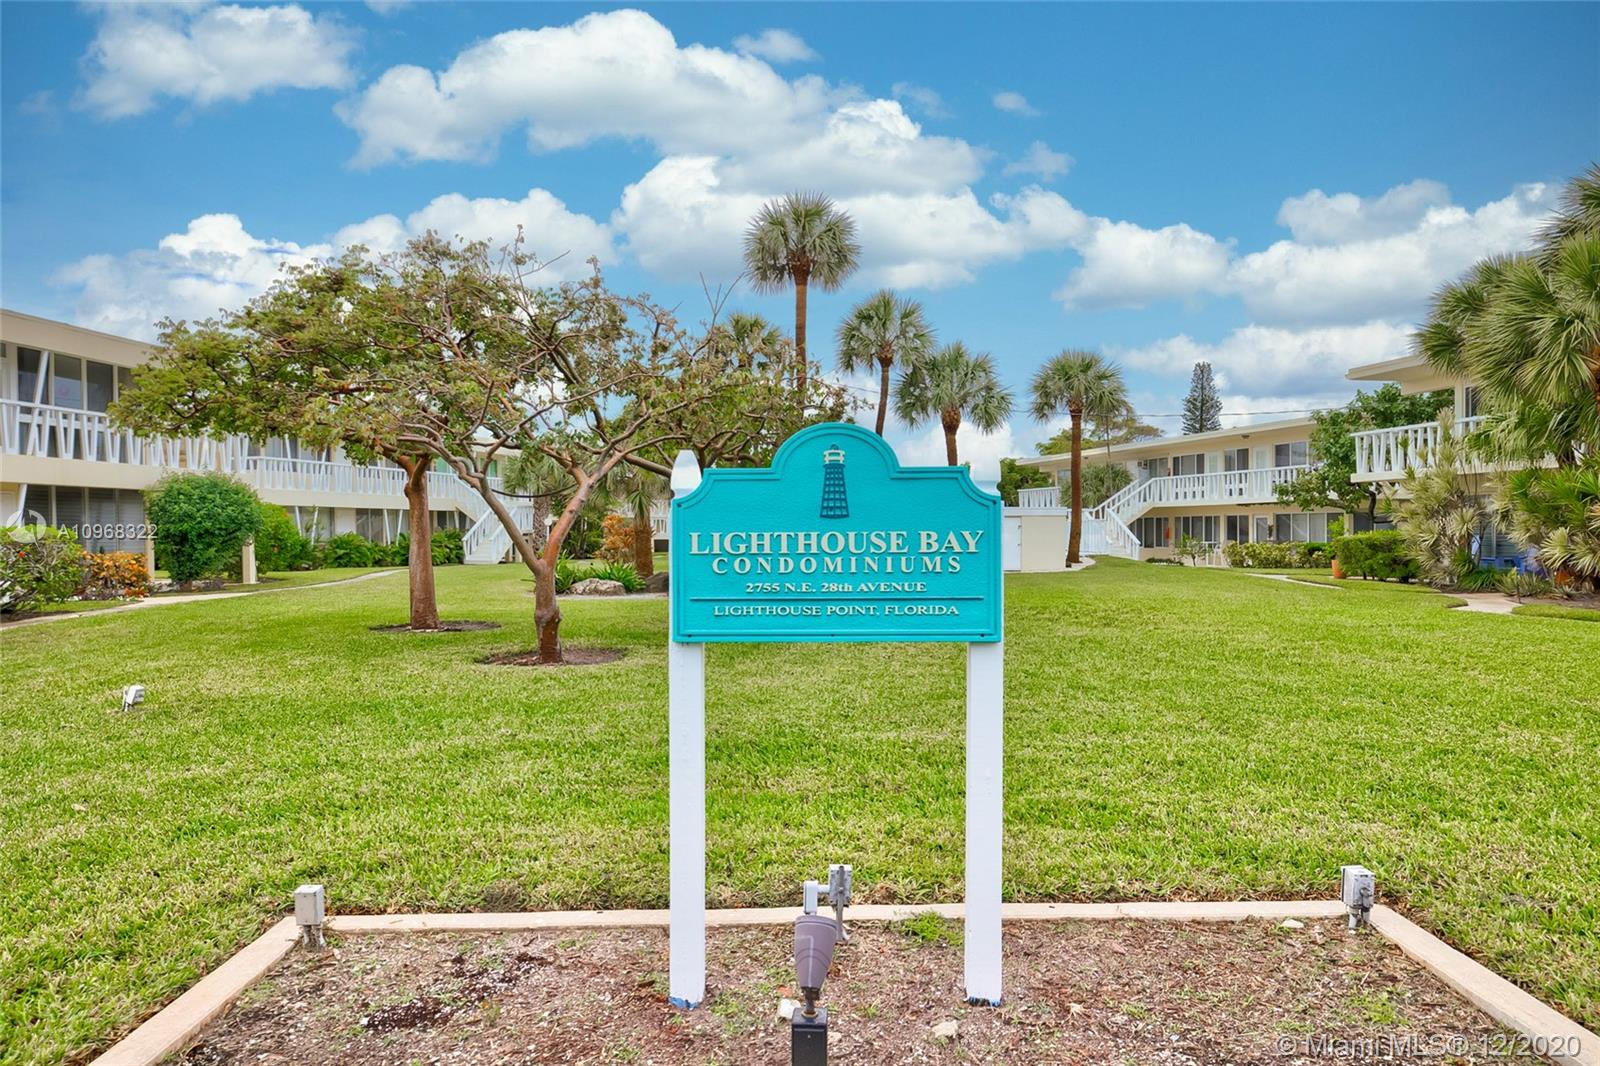 WELCOME TO LIGHTHOUSE BAY AND THE LIGHTHOUSE POINT MARINA. LIVE THE LAID BACK LIFESTYLE, SURROUNDED BY ALL MULTI-MILLION DOLLAR HOMES AND JUST STEPS AWAY TO BOTH LIGHTHOUSE POINT MARINA AND THE INFAMOUS NAUTI DOG RESTAURANT! THIS IS A GROUND LEVEL / FIRST FLOOR 2 BED AND 2 BATH CONDO WITH THE COMMUNITY POOL RIGHT OUT YOUR BACK DOOR. ITS IN GREAT CONDITION WITH A FULLY UPDATED KITCHEN WITH QUARTIZE COUNTERTOPS AND MARBLE ACCENTS. THE BATHS HAVE BEEN EQUALLY UPDATED AS WELL. THERE IS ALSO A FULL SIZE WASHER AND DRYER IN THE UNIT FOR YOUR CONVENIENCE. BRING YOUR BOAT AND PARK IT IN THE MARINA, THERE ARE SLIPS AVAIABLE. VERY UNIQUE CONDO OPPORTUNITY IN ONE OF THE BEST RESDIENTIAL NEIGHBOROODS, ALSO INVESTOR FRIENDLY W/ NO WAITING PERIOD TO RENT. SHORT TERM RENTALS OK! PET FRIENDLY TOO